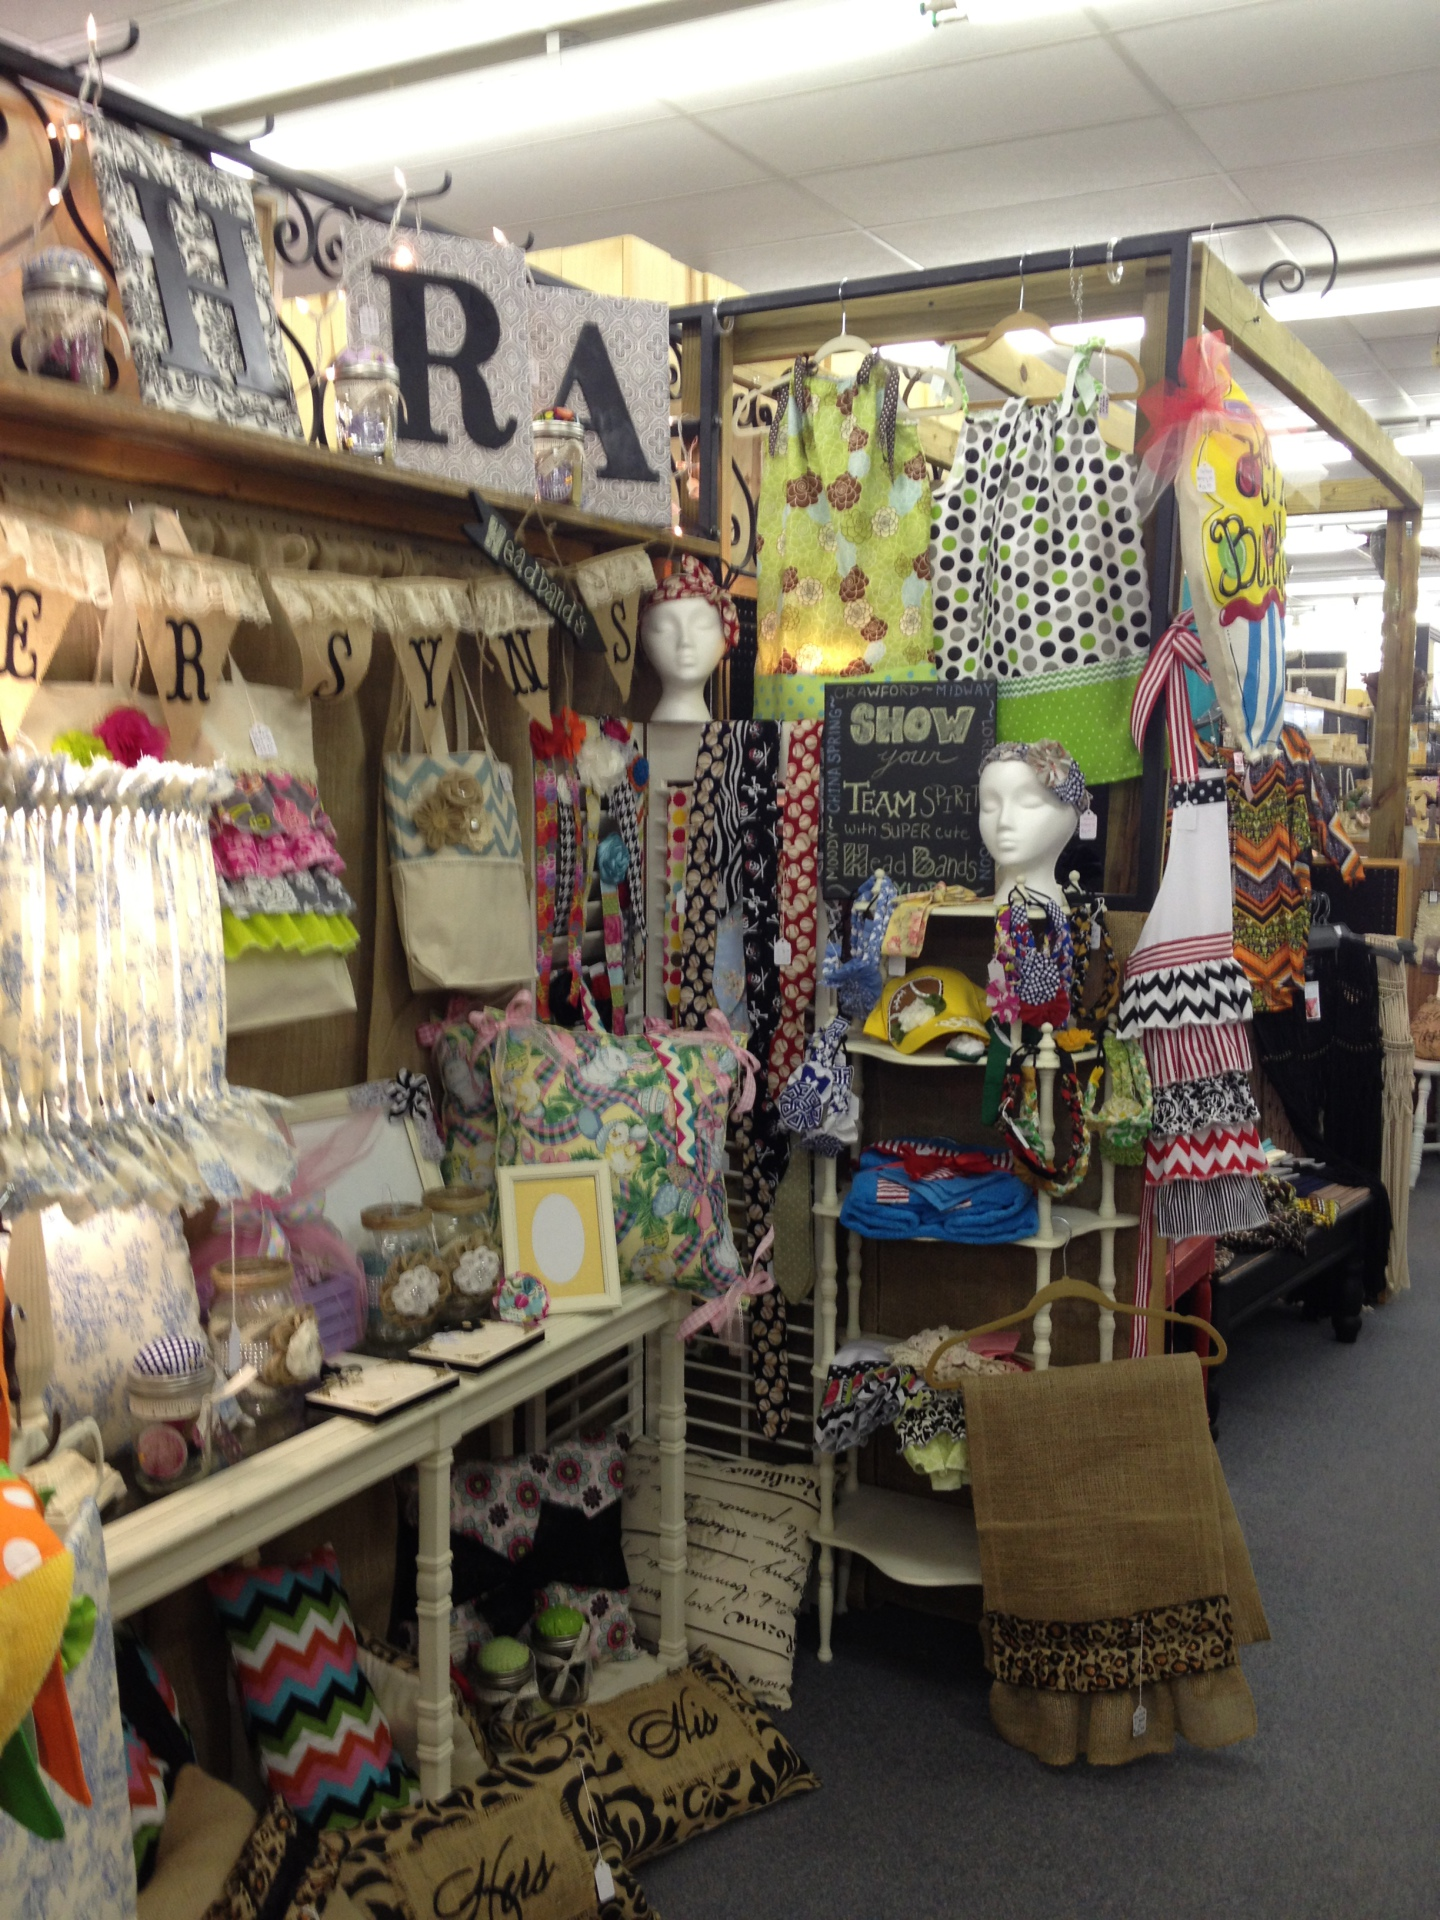 Lace, burlap wall hangings, restored lamp shades and other great finds.